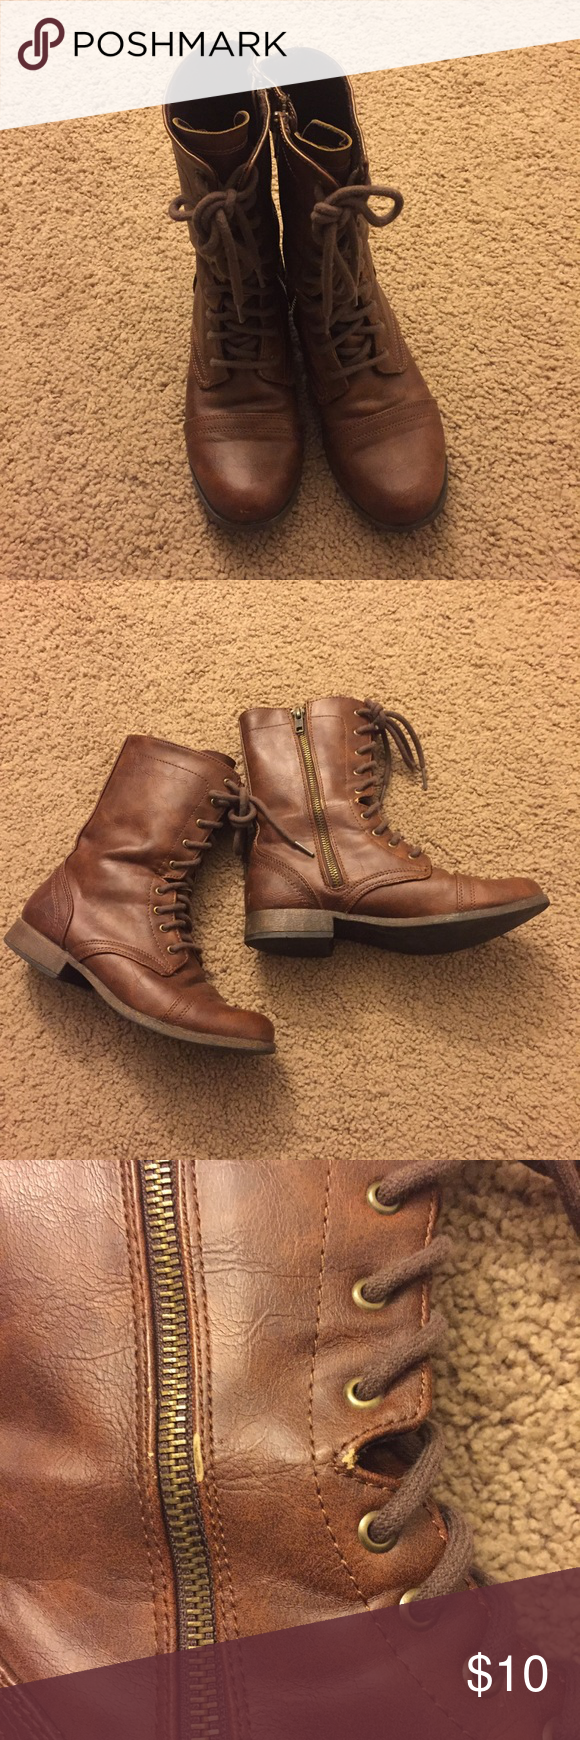 Brown combat boots Size 6.5. Bought these from Target. Brown faux leather combat boots with a small heel. Has zipper closure on the sides in addition to the laces. Heels are slightly worn as reflected in the price. Minor wear shown in picture. Mossimo Supply Co. Shoes Combat & Moto Boots